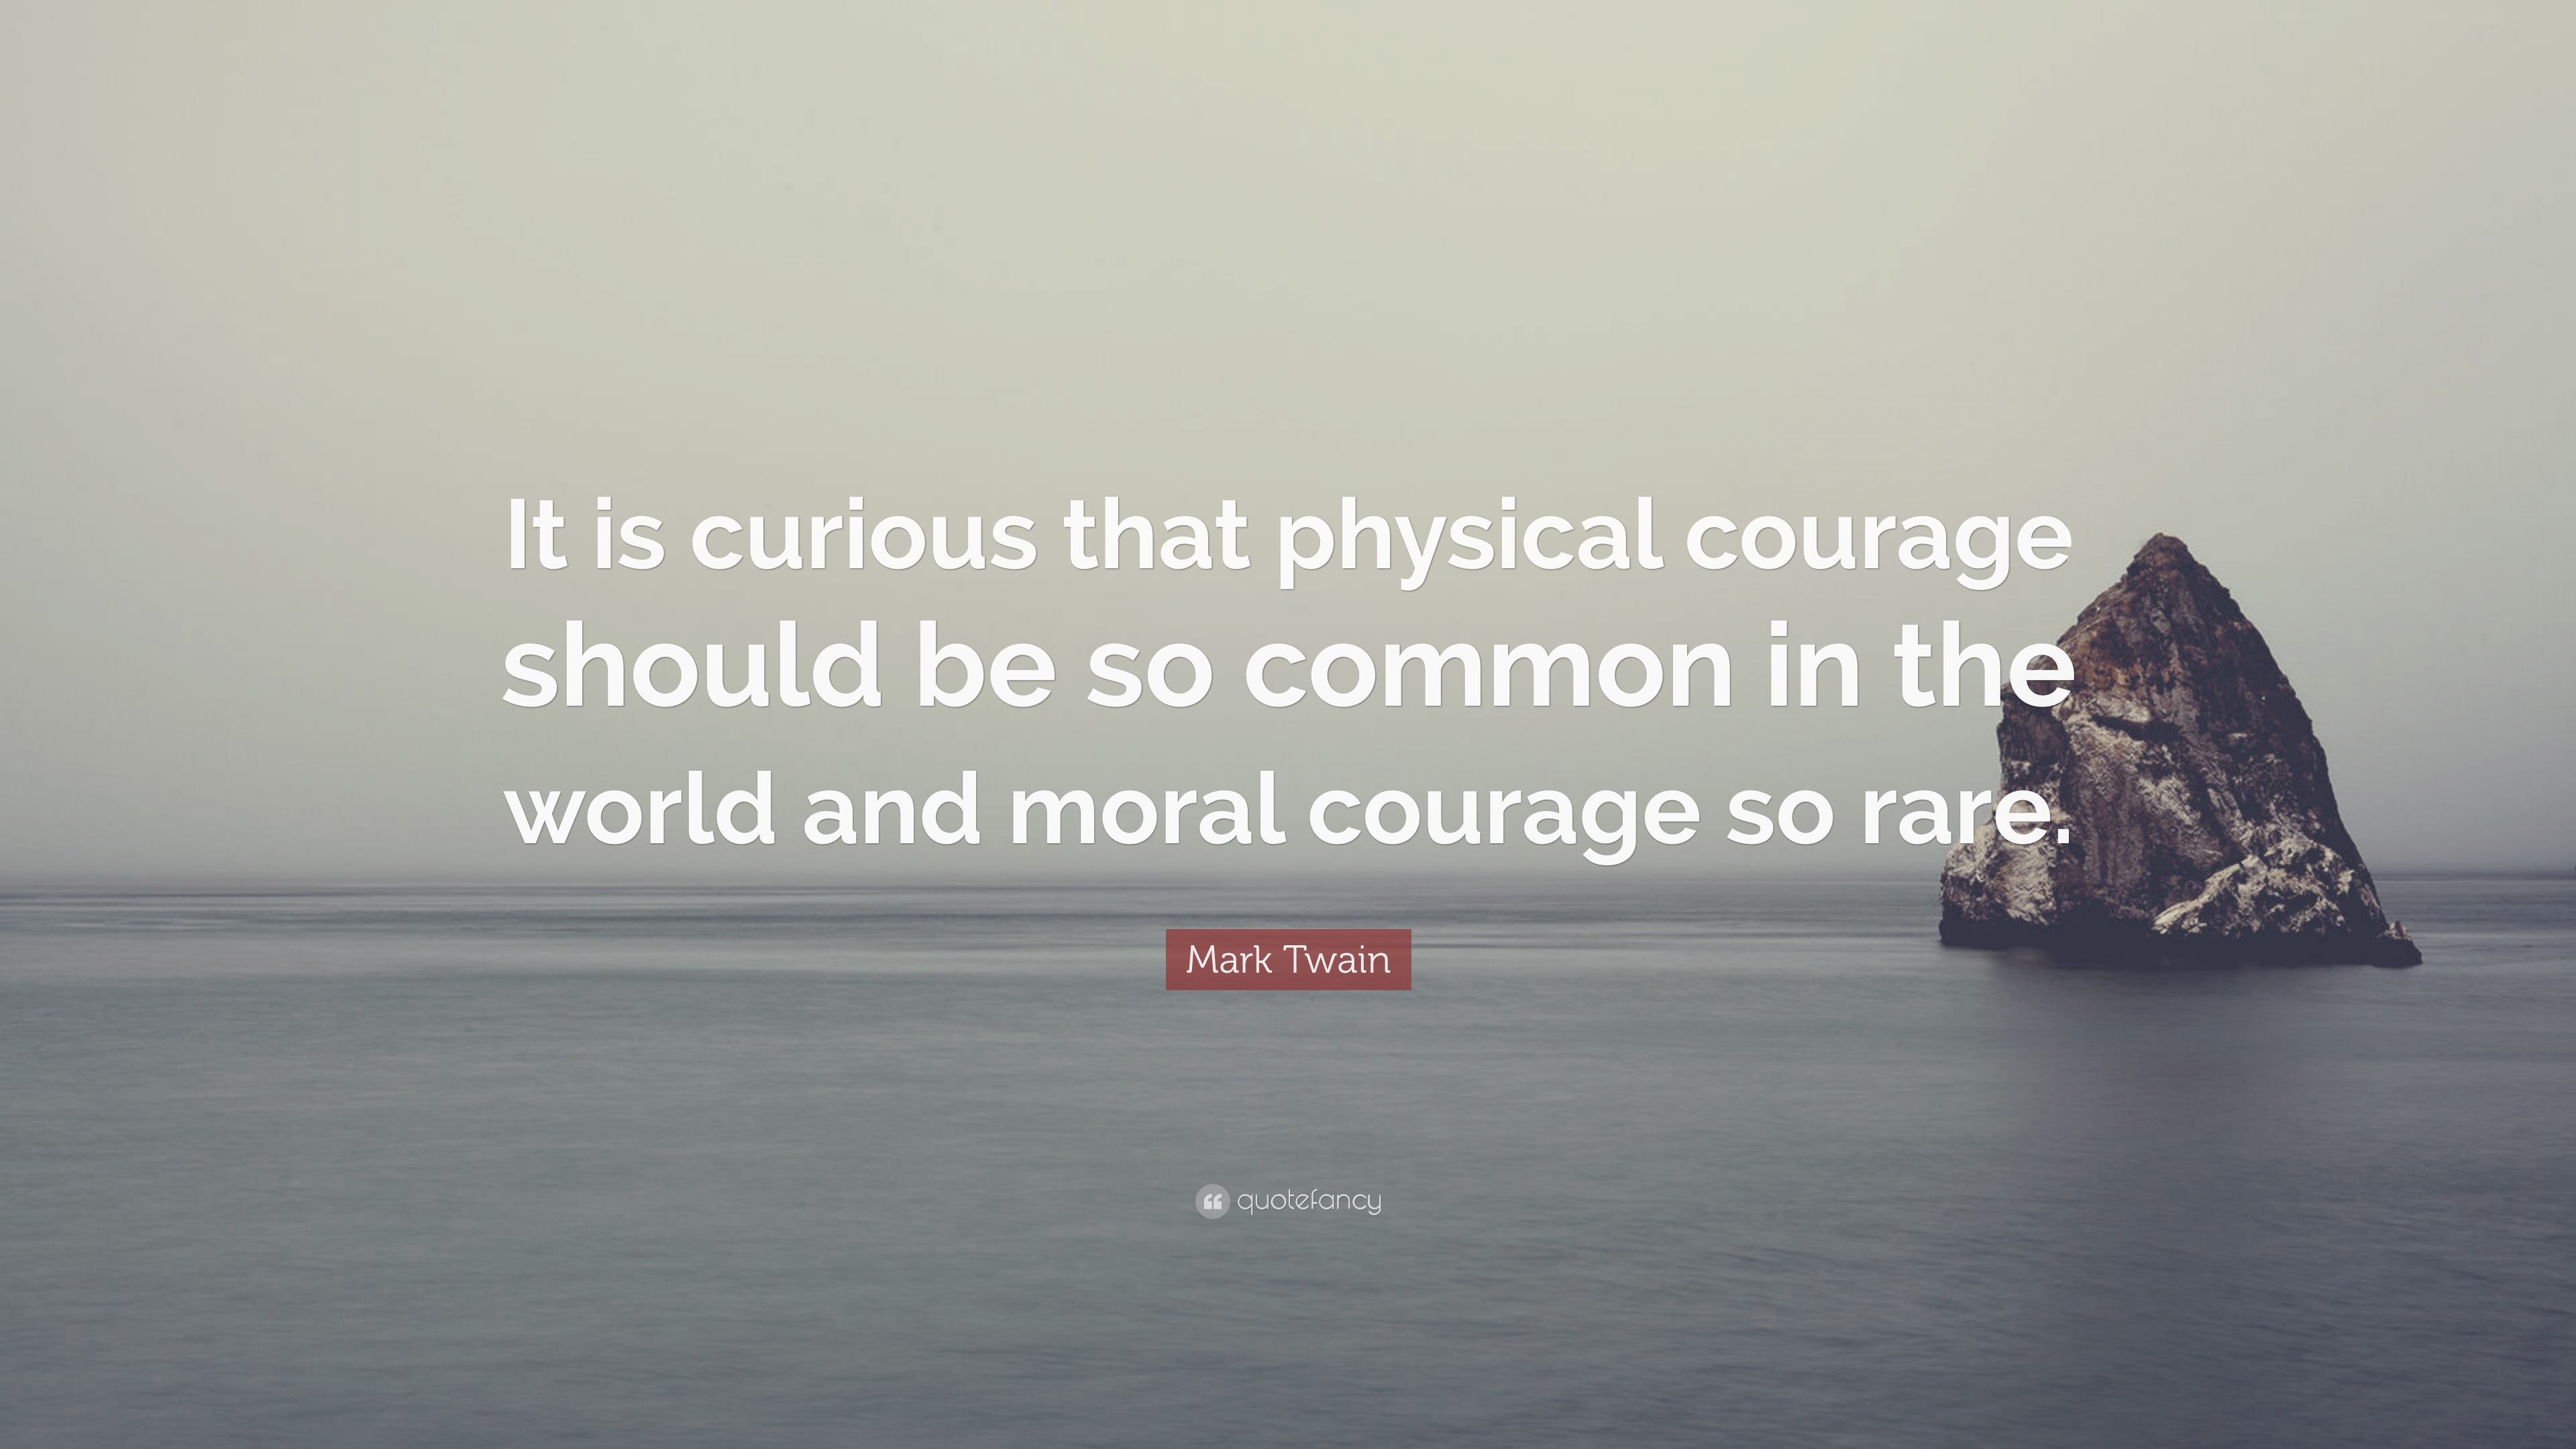 """essay about physical courage Winston churchill once said that """"courage is what it takes to stand up and speak courage is also what it takes to sit down and listen """" courage is defined as the ability to confront fear."""